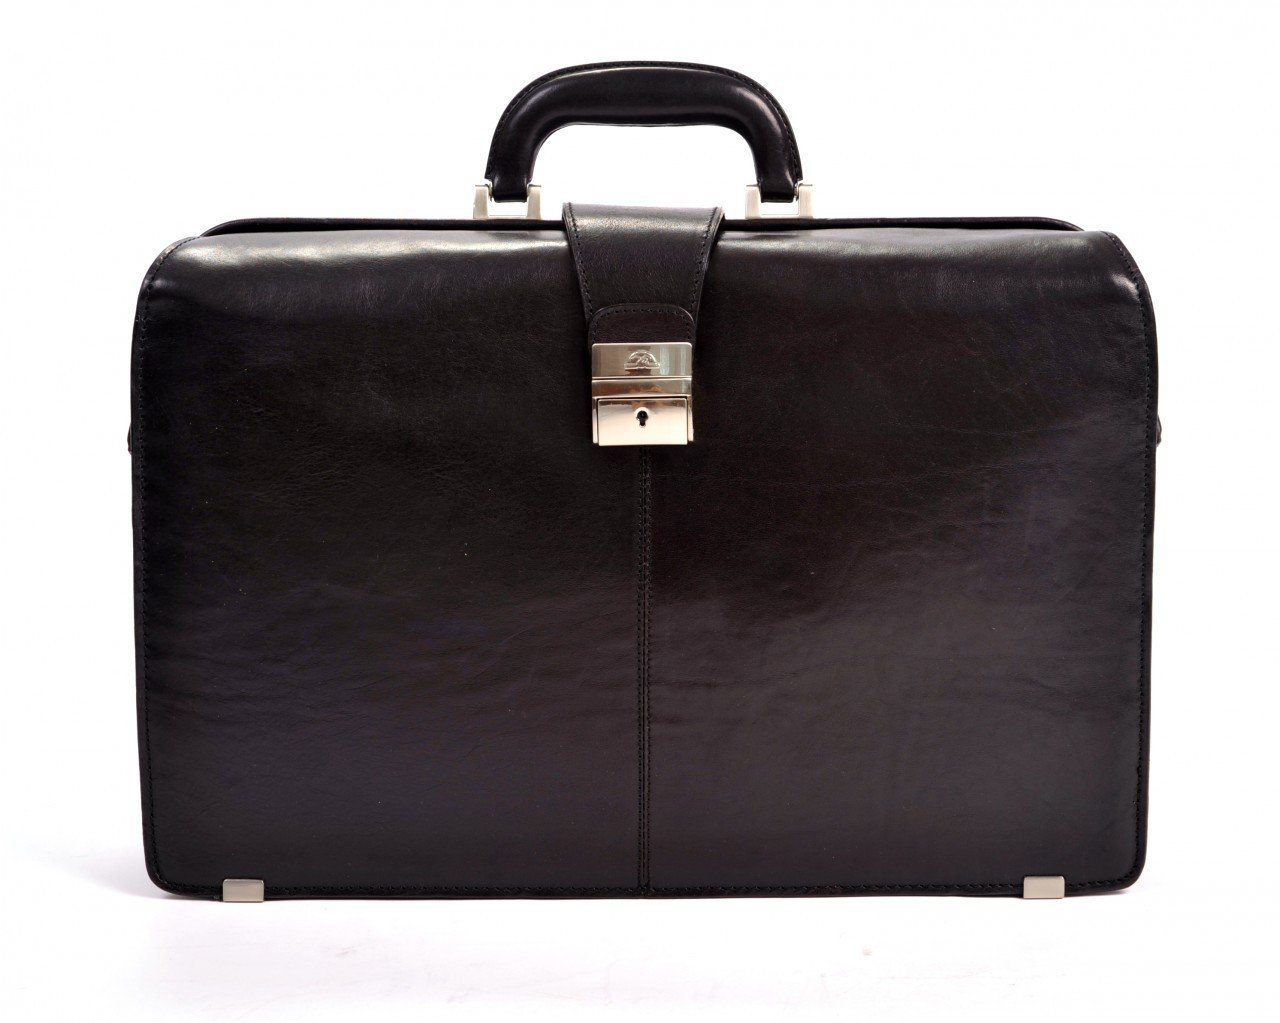 CUSTOM PERSONALIZED INITIALS ENGRAVING Tony Perotti Mens Italian Bull Leather Benevento Double Compartment Lawyer's Leather Laptop Briefcase in Black